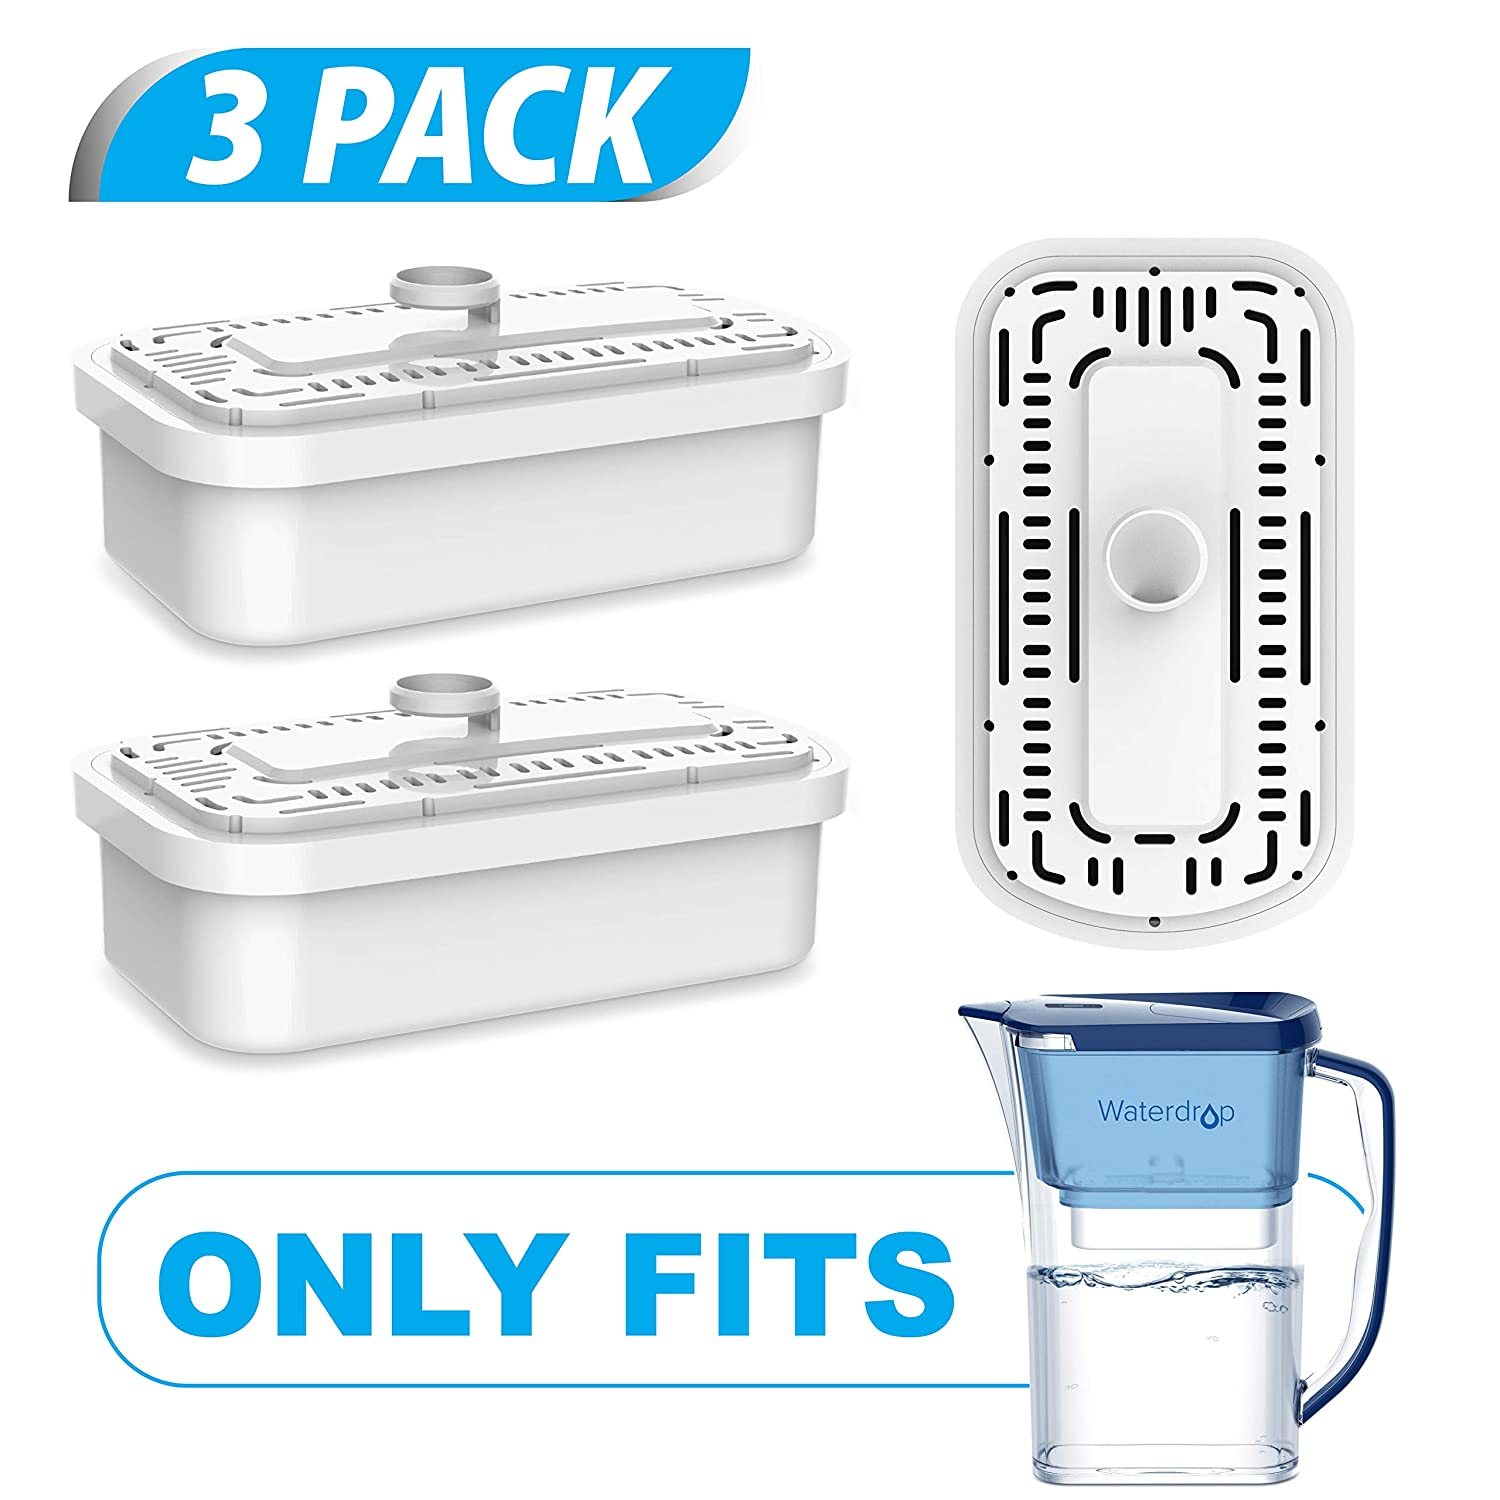 Waterdrop Replacement Filters for WD-PT-03 Water Filter Pitcher ACF Filtration System, Last Up to 9 Months (Pack of 3)